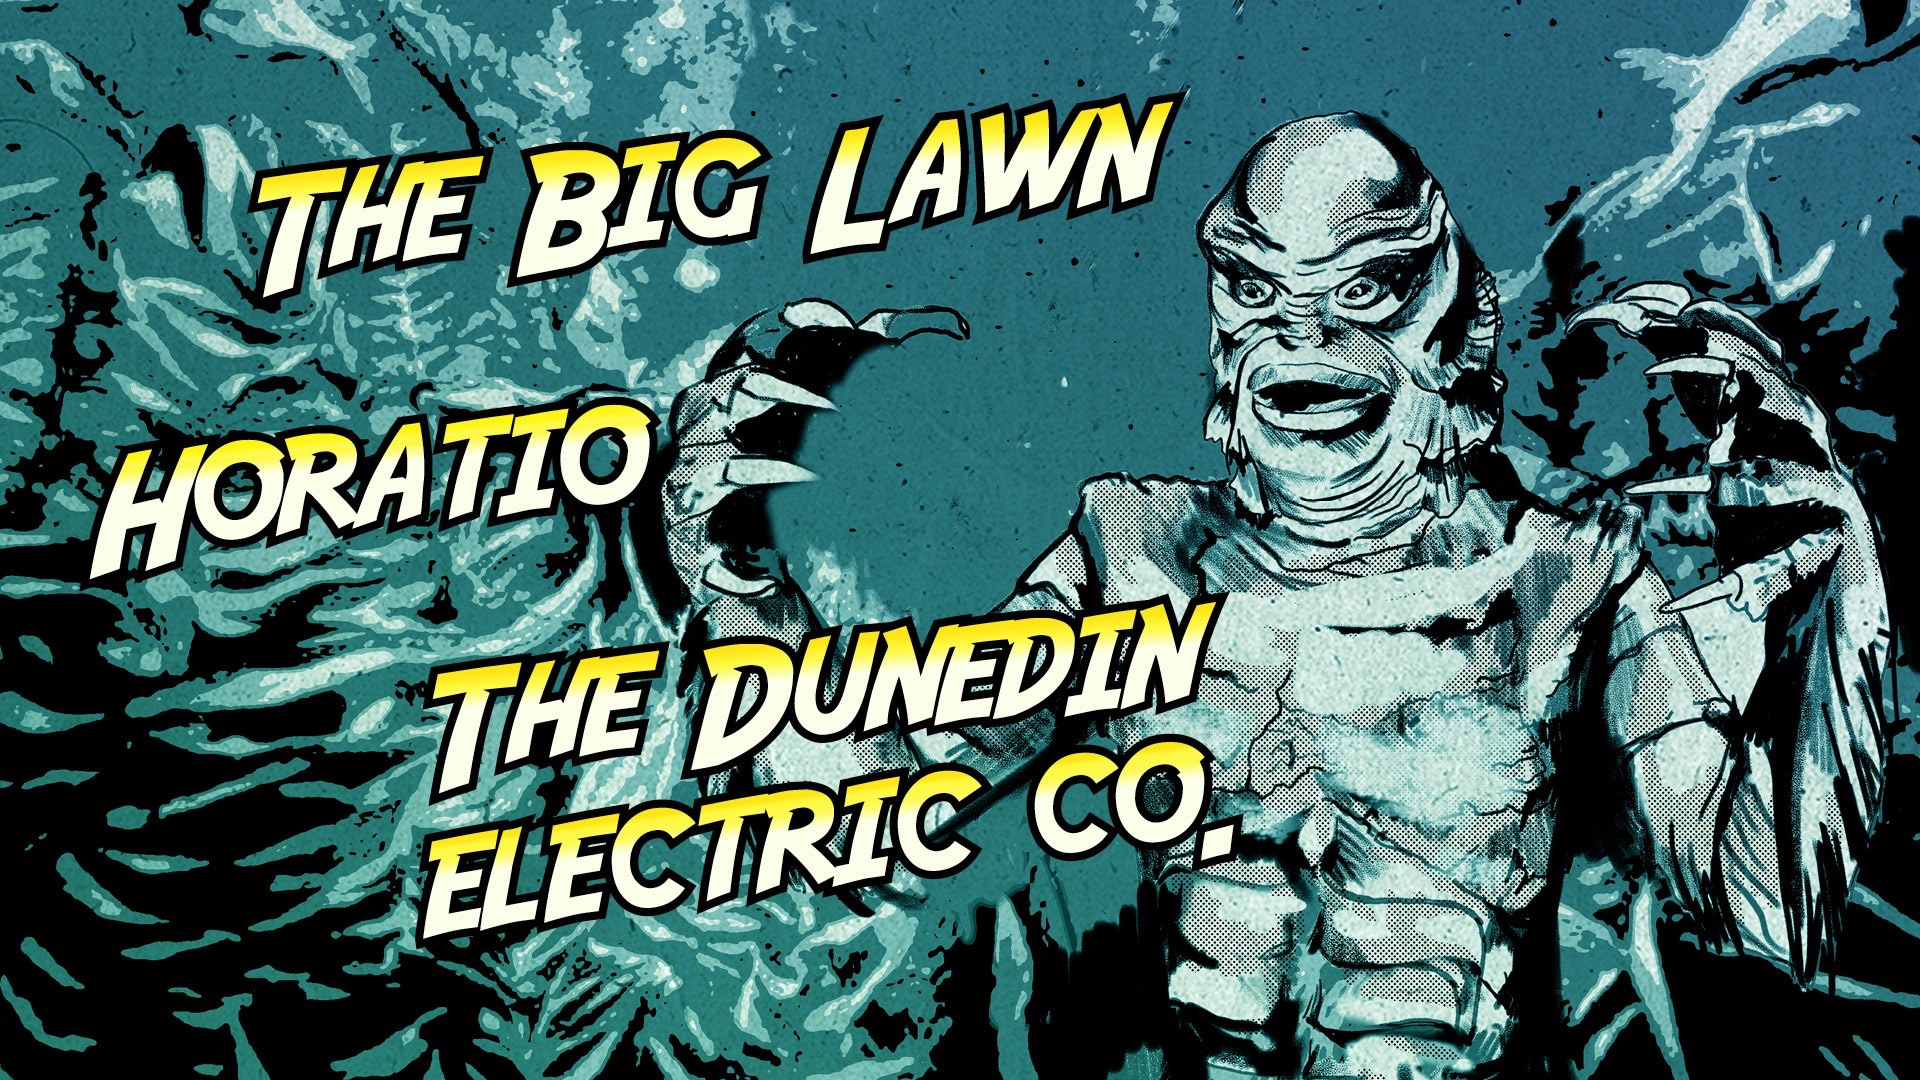 The Big Lawn, Dunedin Electric Co, Horatio